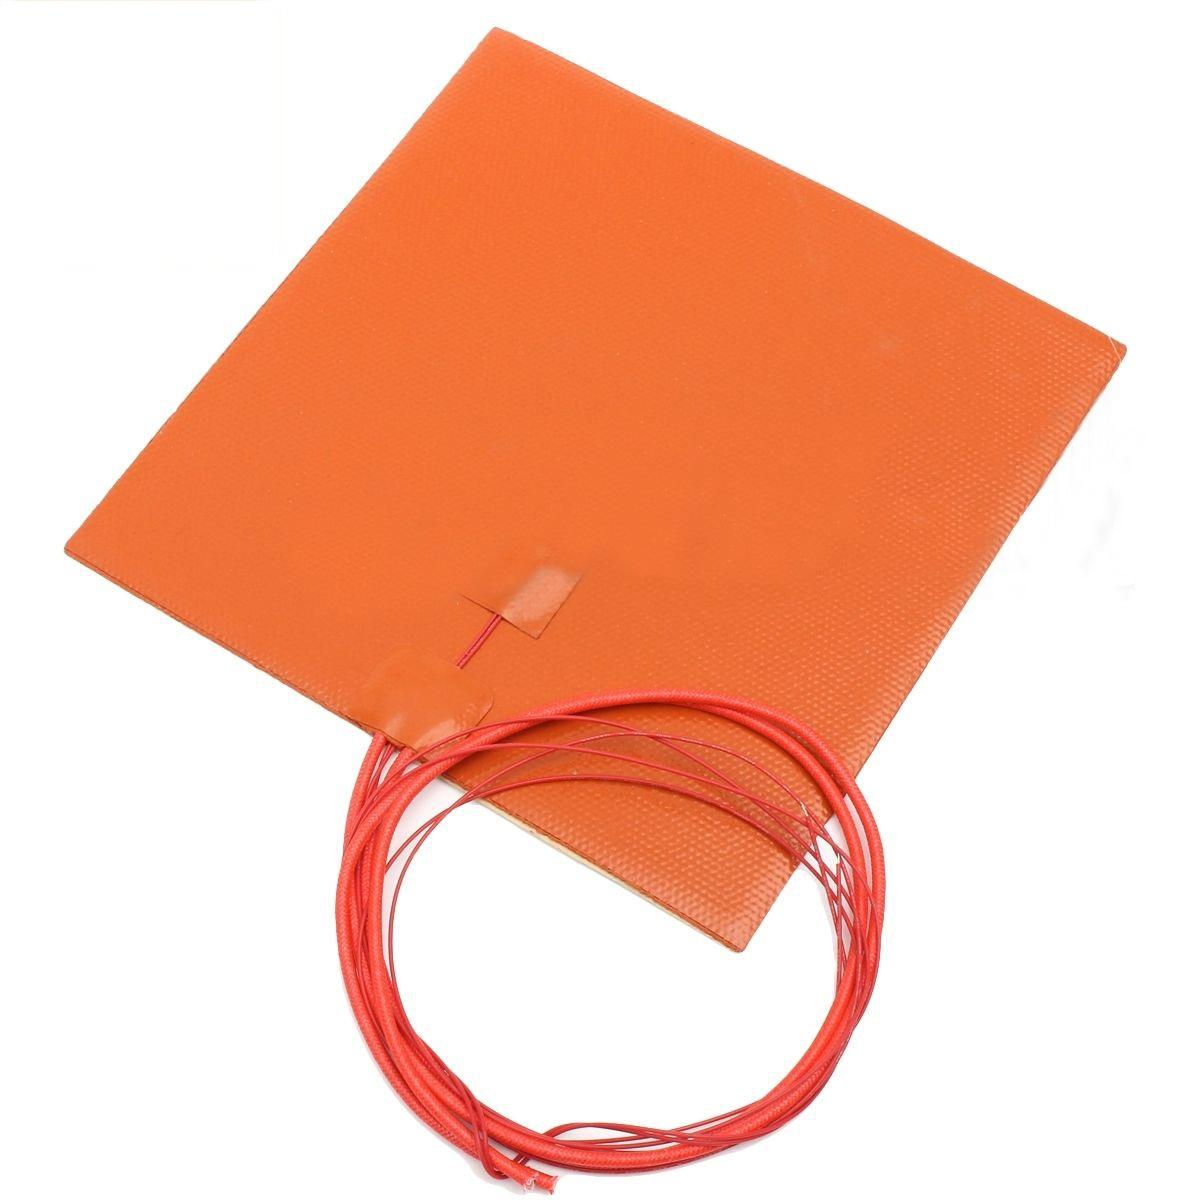 200*200mm 200w 12v Waterproof Silicone Heating Pads For 3D Printer